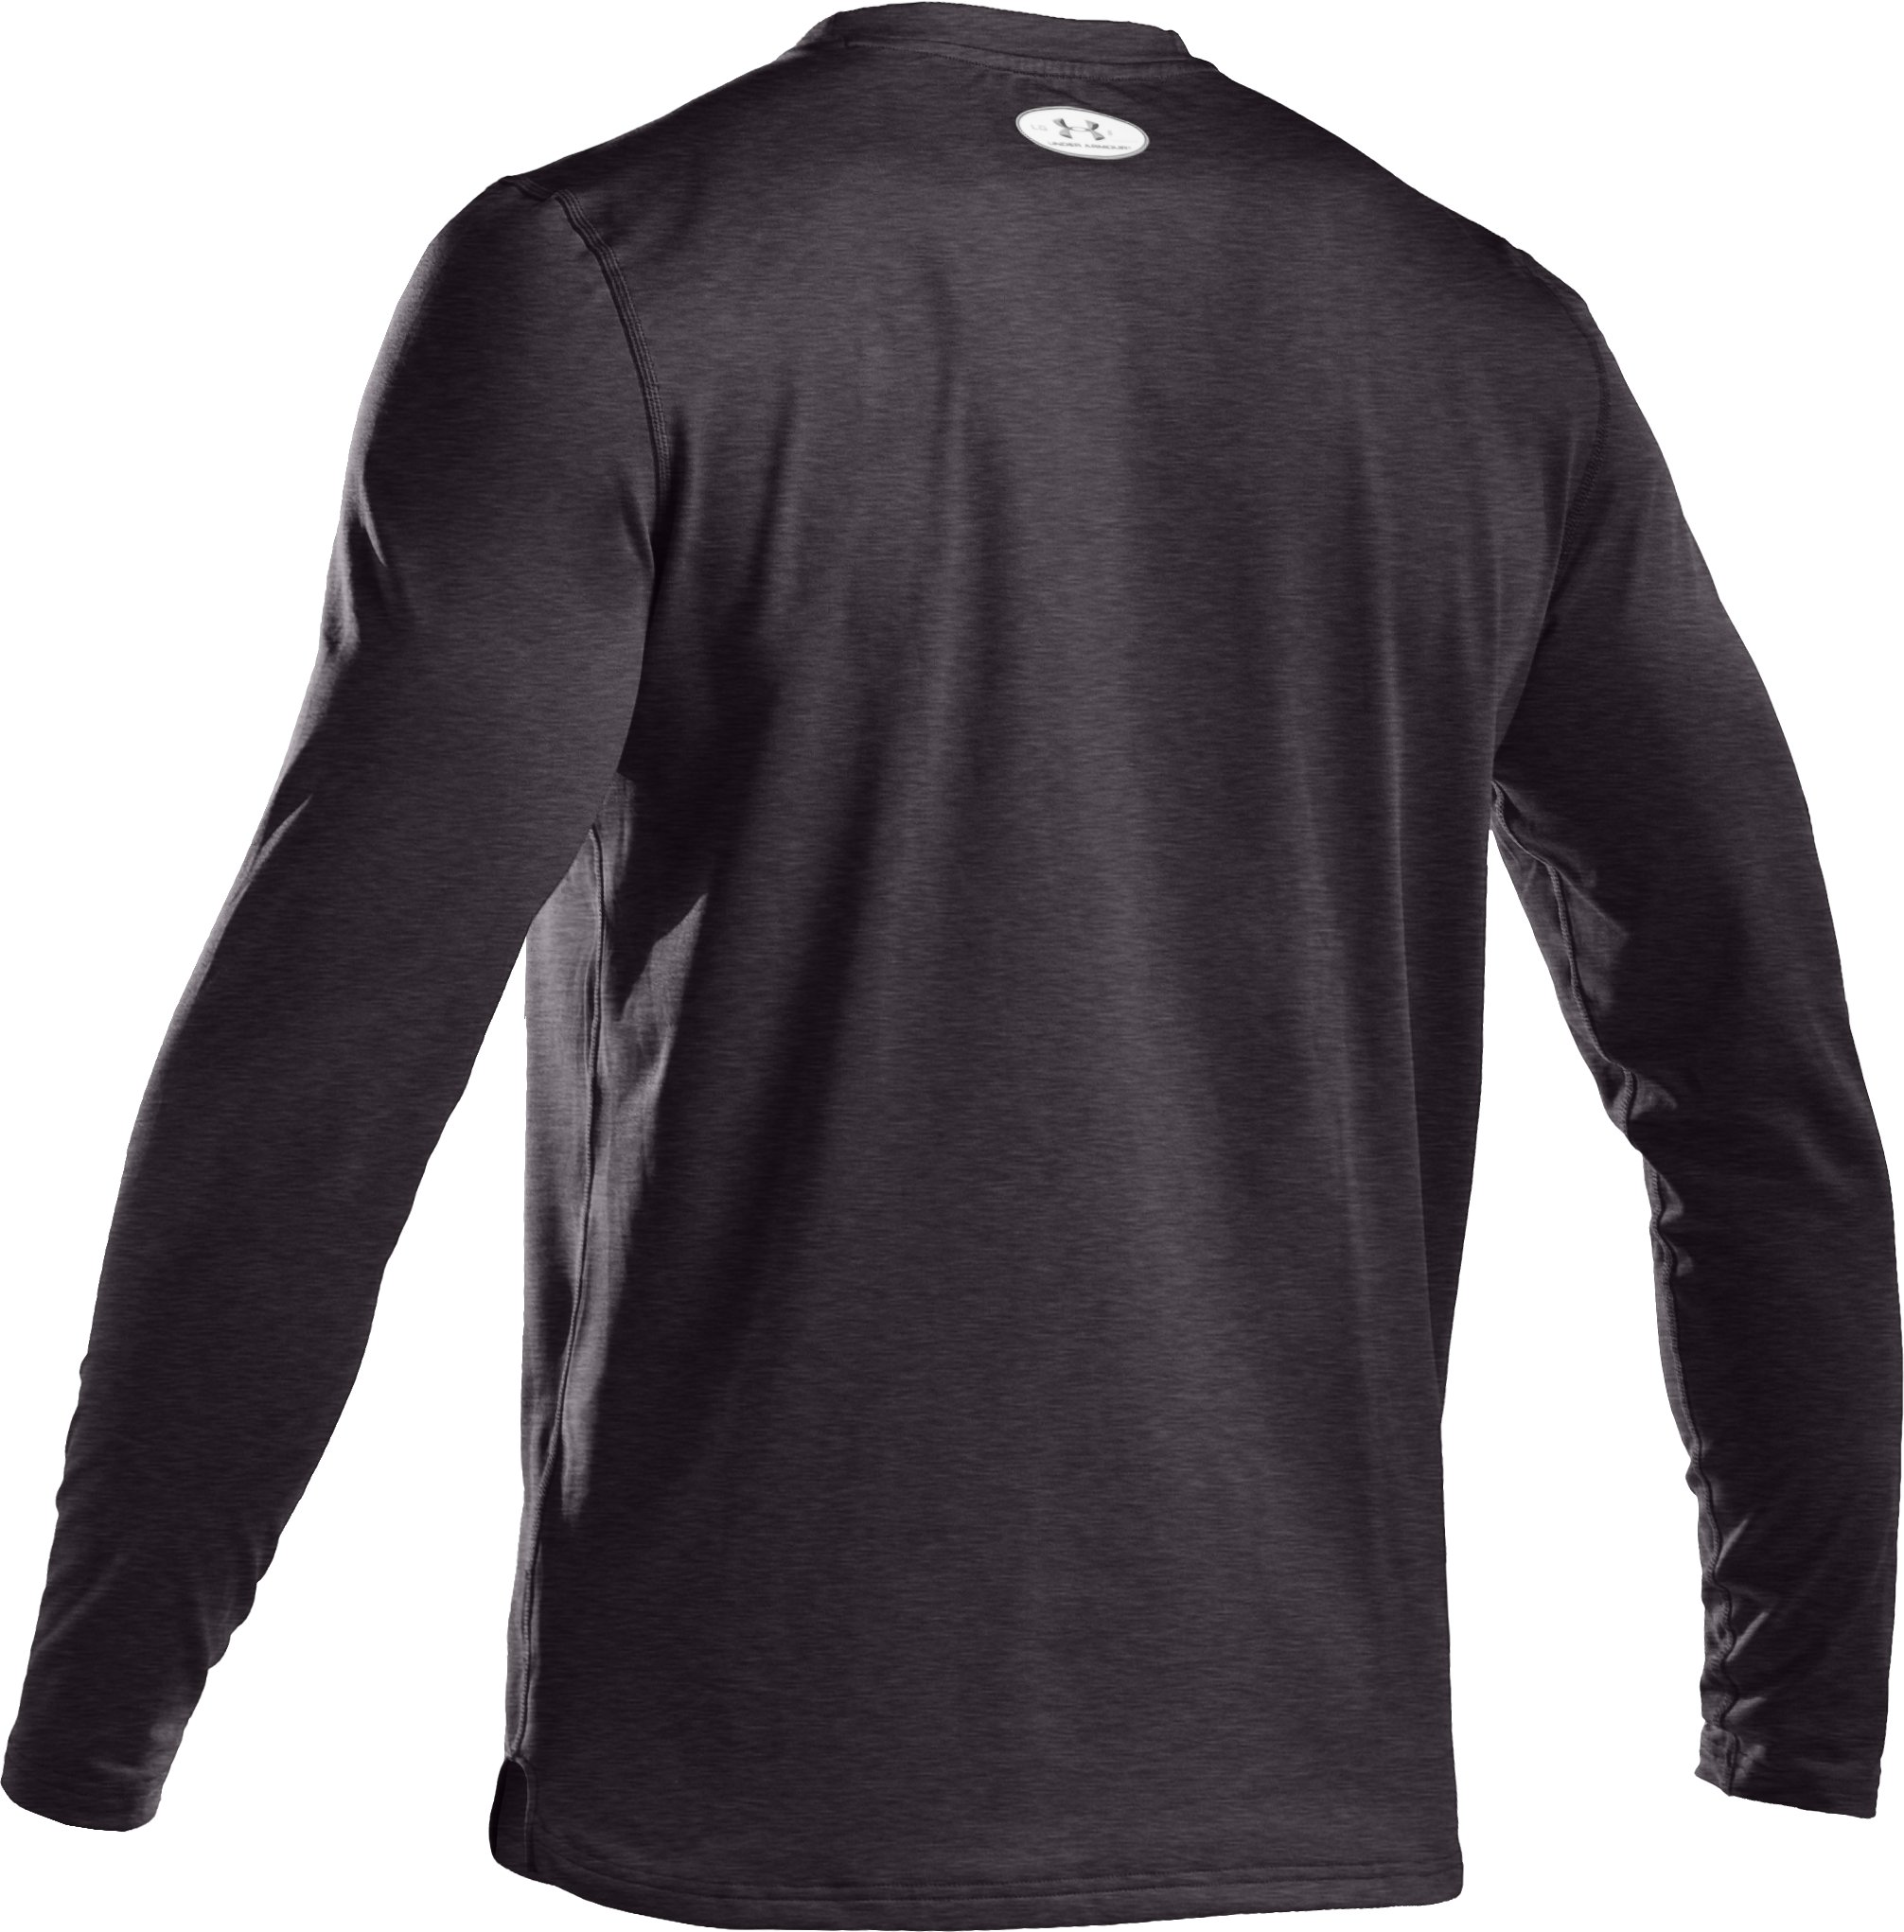 Men's ColdGear® Fitted Long Sleeve Crew, Carbon Heather